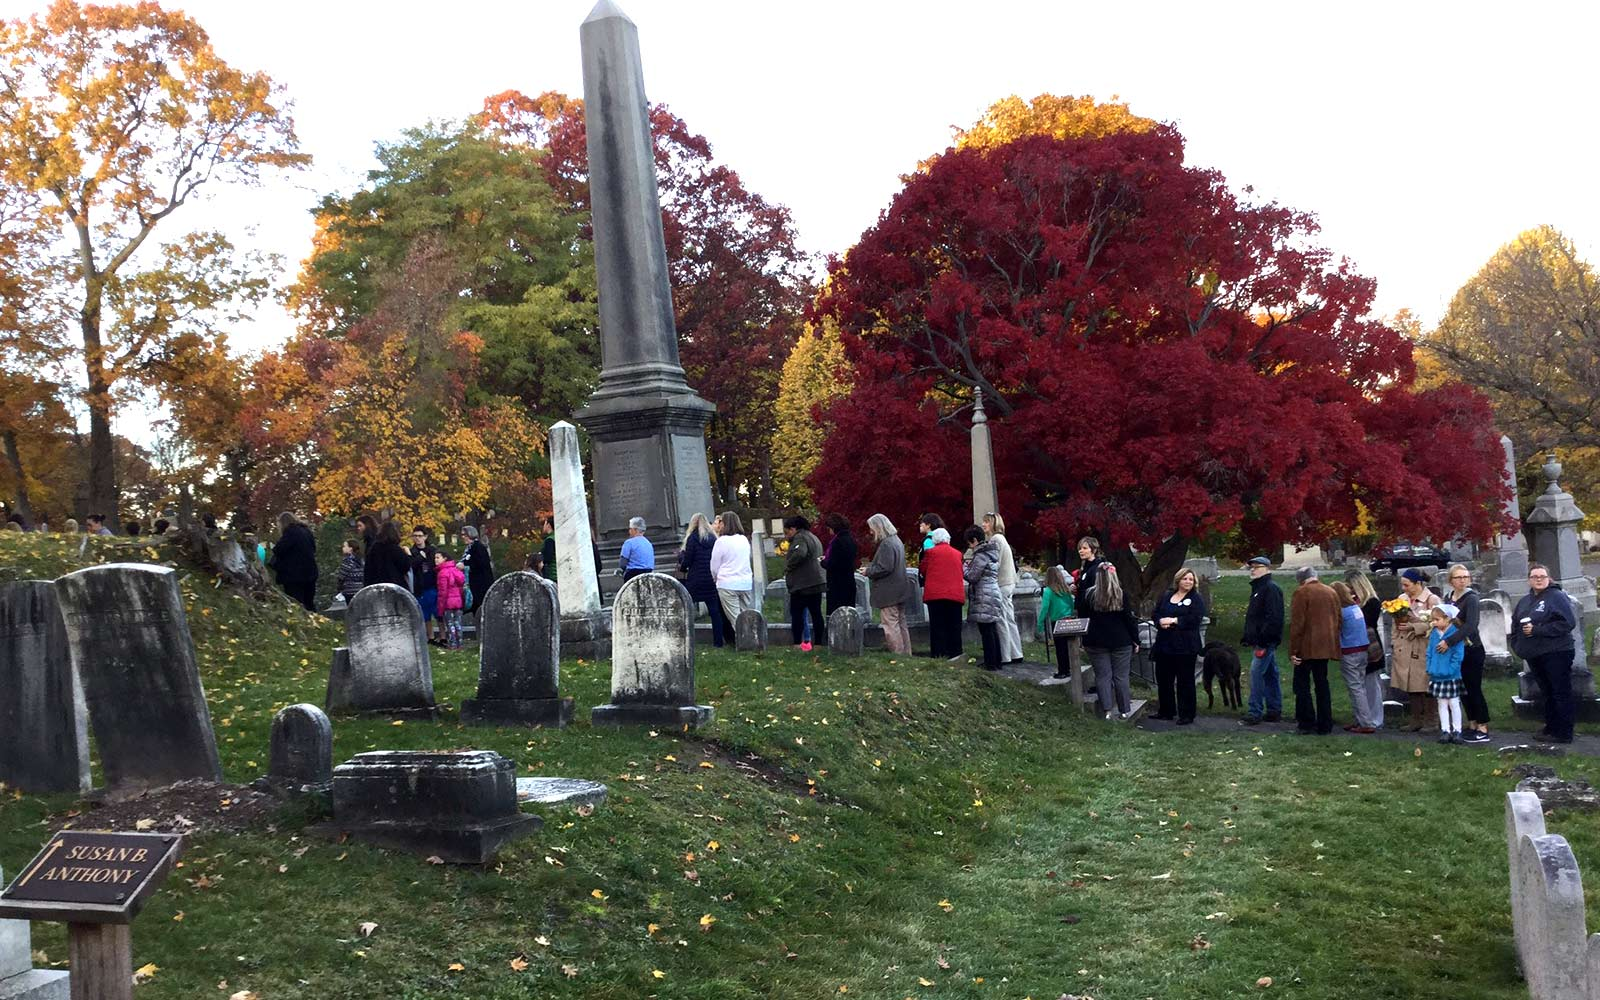 Voters Pay Homage to Susan B. Anthony